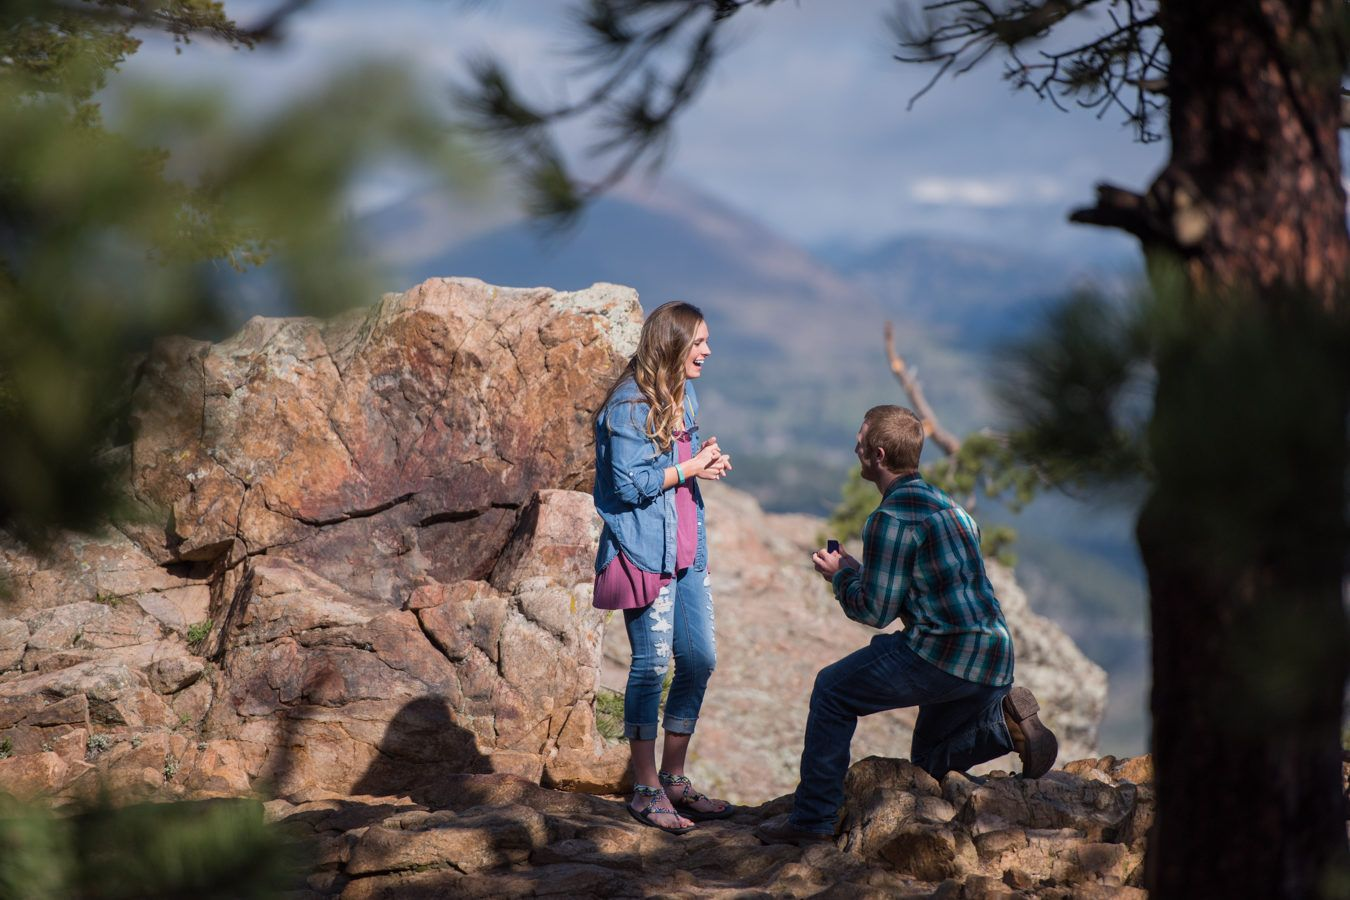 Boulder Proposal at Lost Gulch Overlook Engagement Location Idea